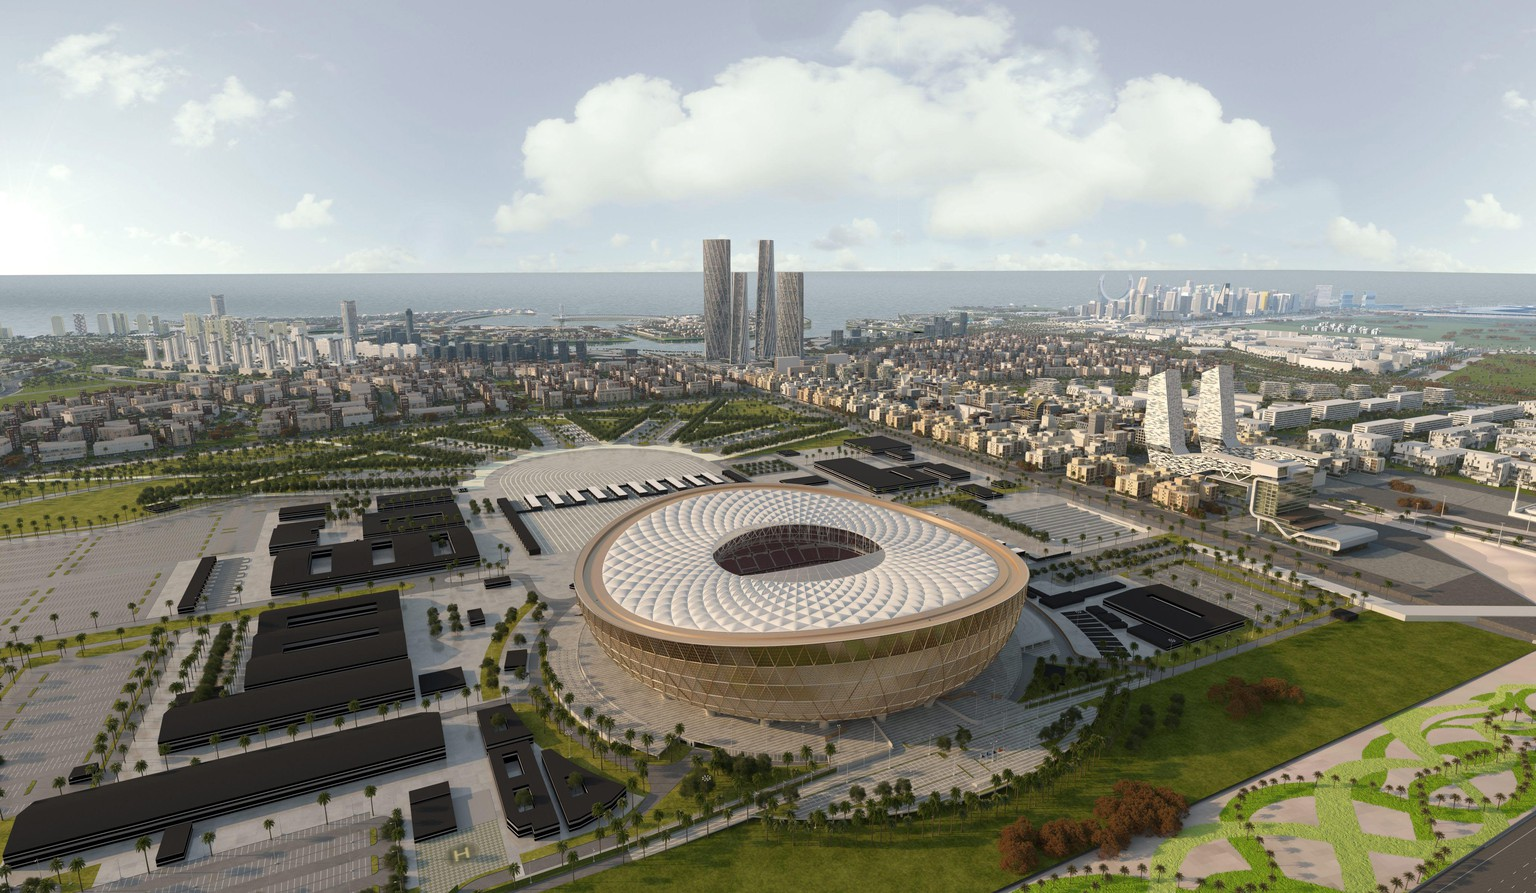 epa07234199 A handout computer generated image made available on 15 December 2018 by Qatar World Cup 2022  Supreme Committee for Delivery & Legacy (SC) shows opening and final games of the 2022 FIFA World Cup Qatar 80,000-seater Al-Lusail Stadium after the committee revealed the design.  EPA/- handout  image HANDOUT EDITORIAL USE ONLY/NO SALES